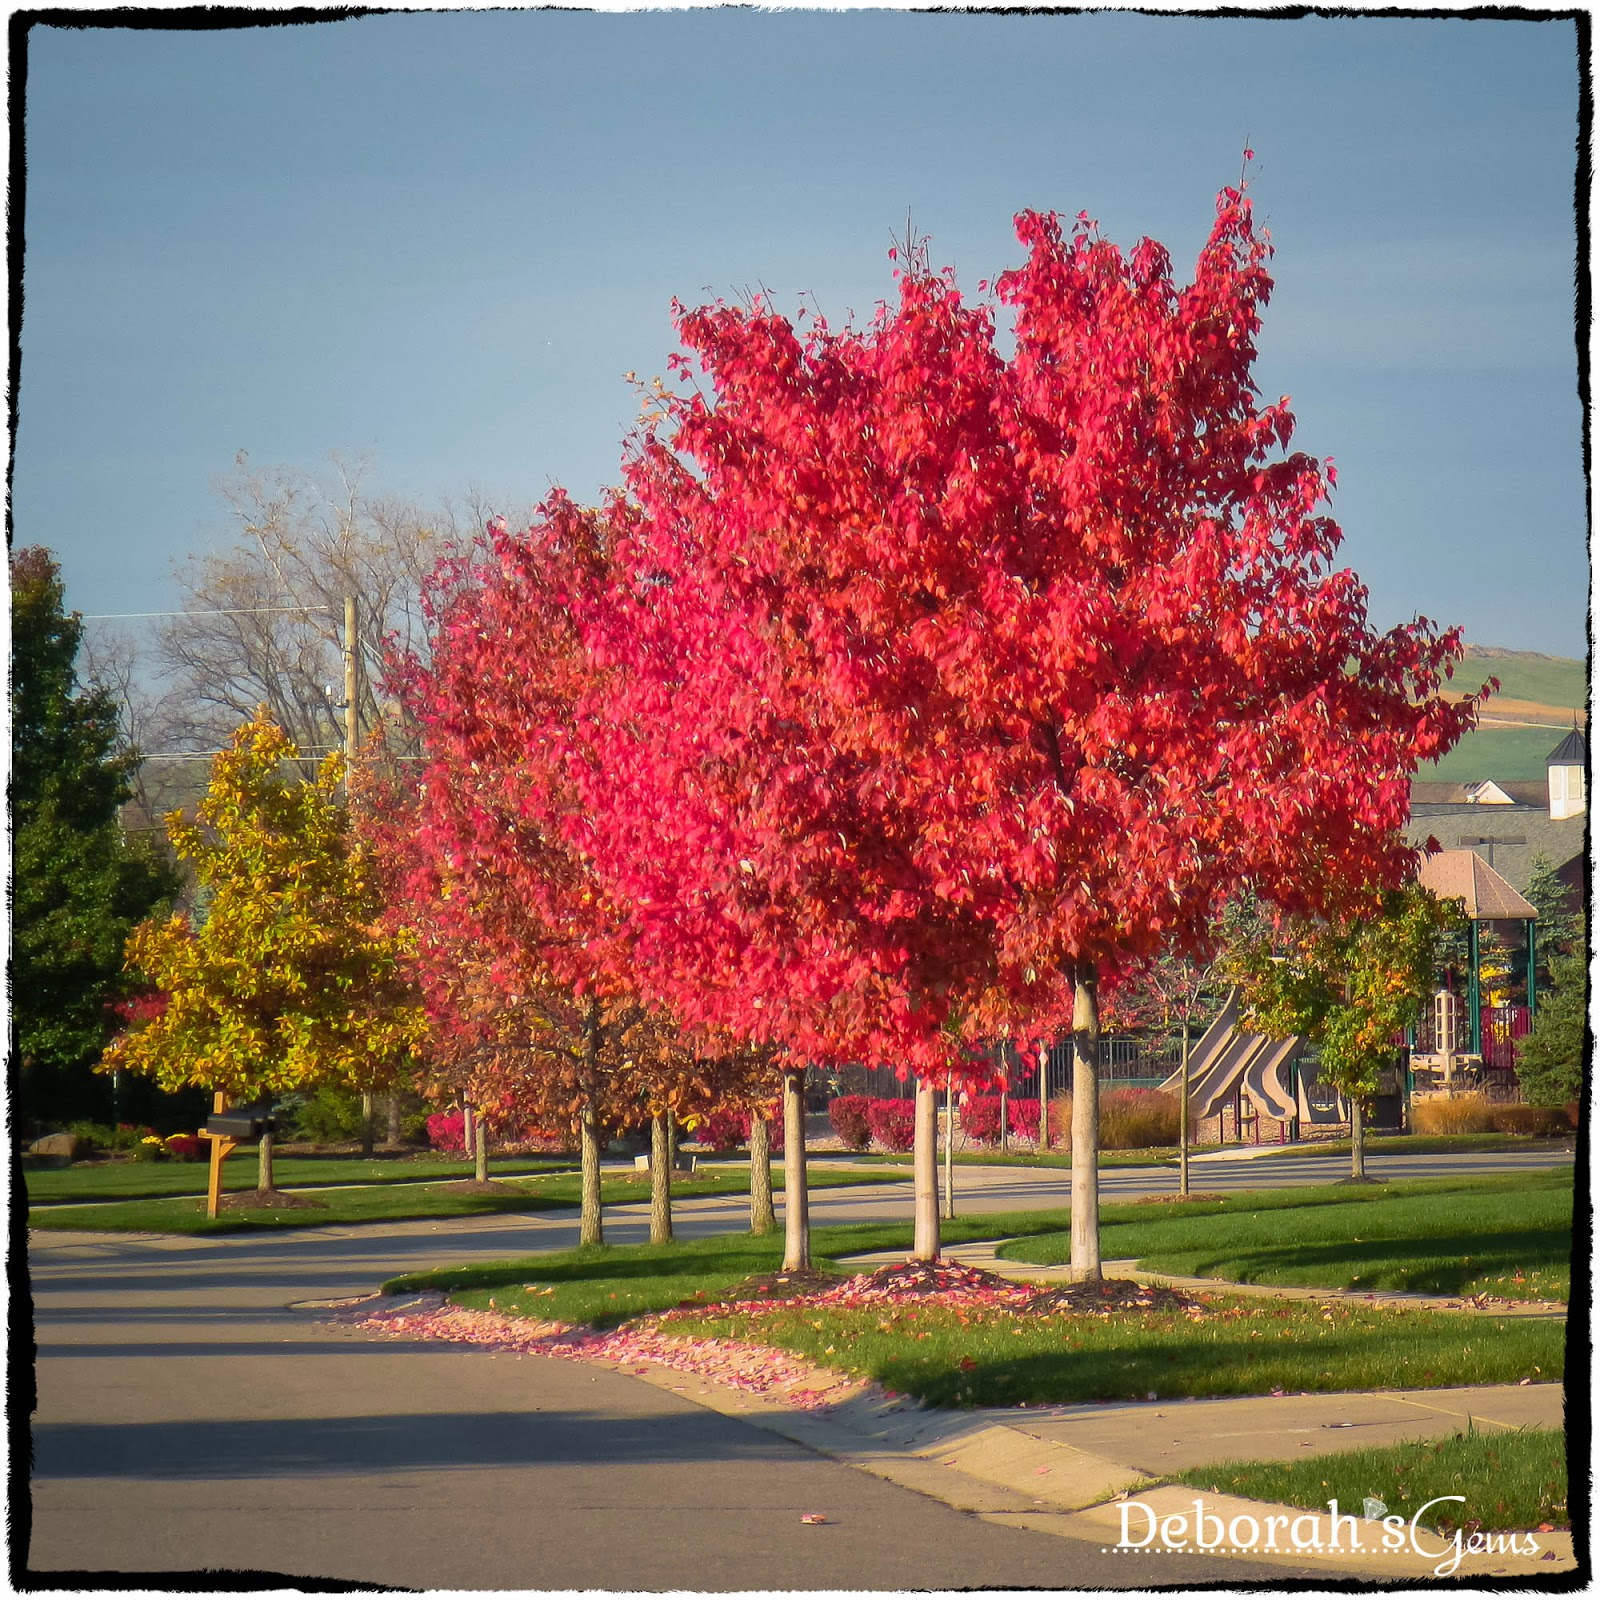 Autumn Glory 2 - photo by Deborah Frings - Deborah's Gems